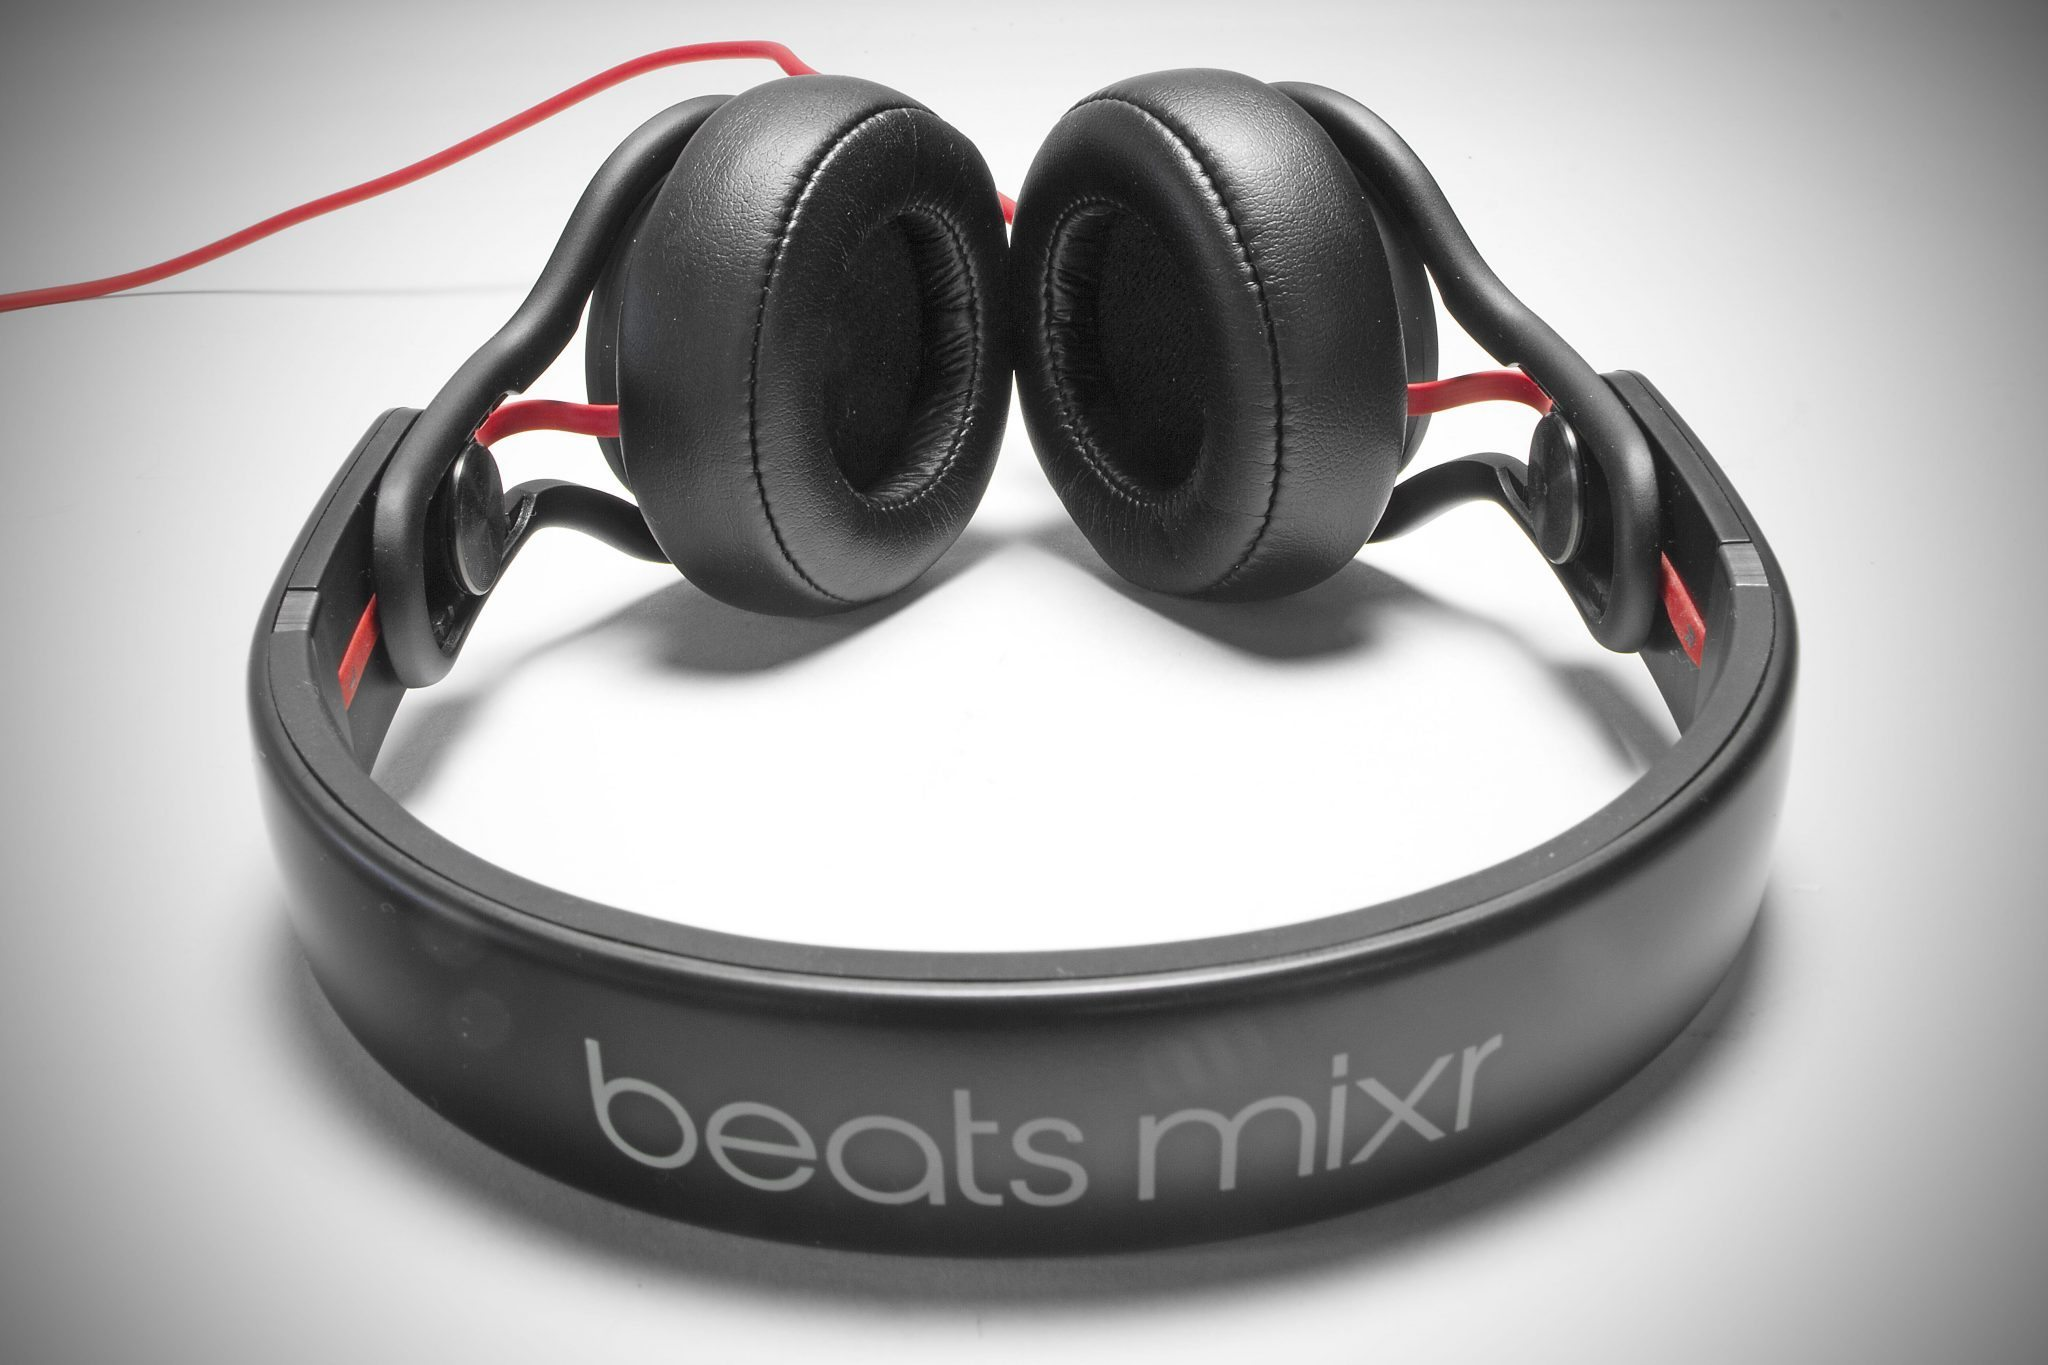 Are Beats by Dr. Dre headphones worth the money?